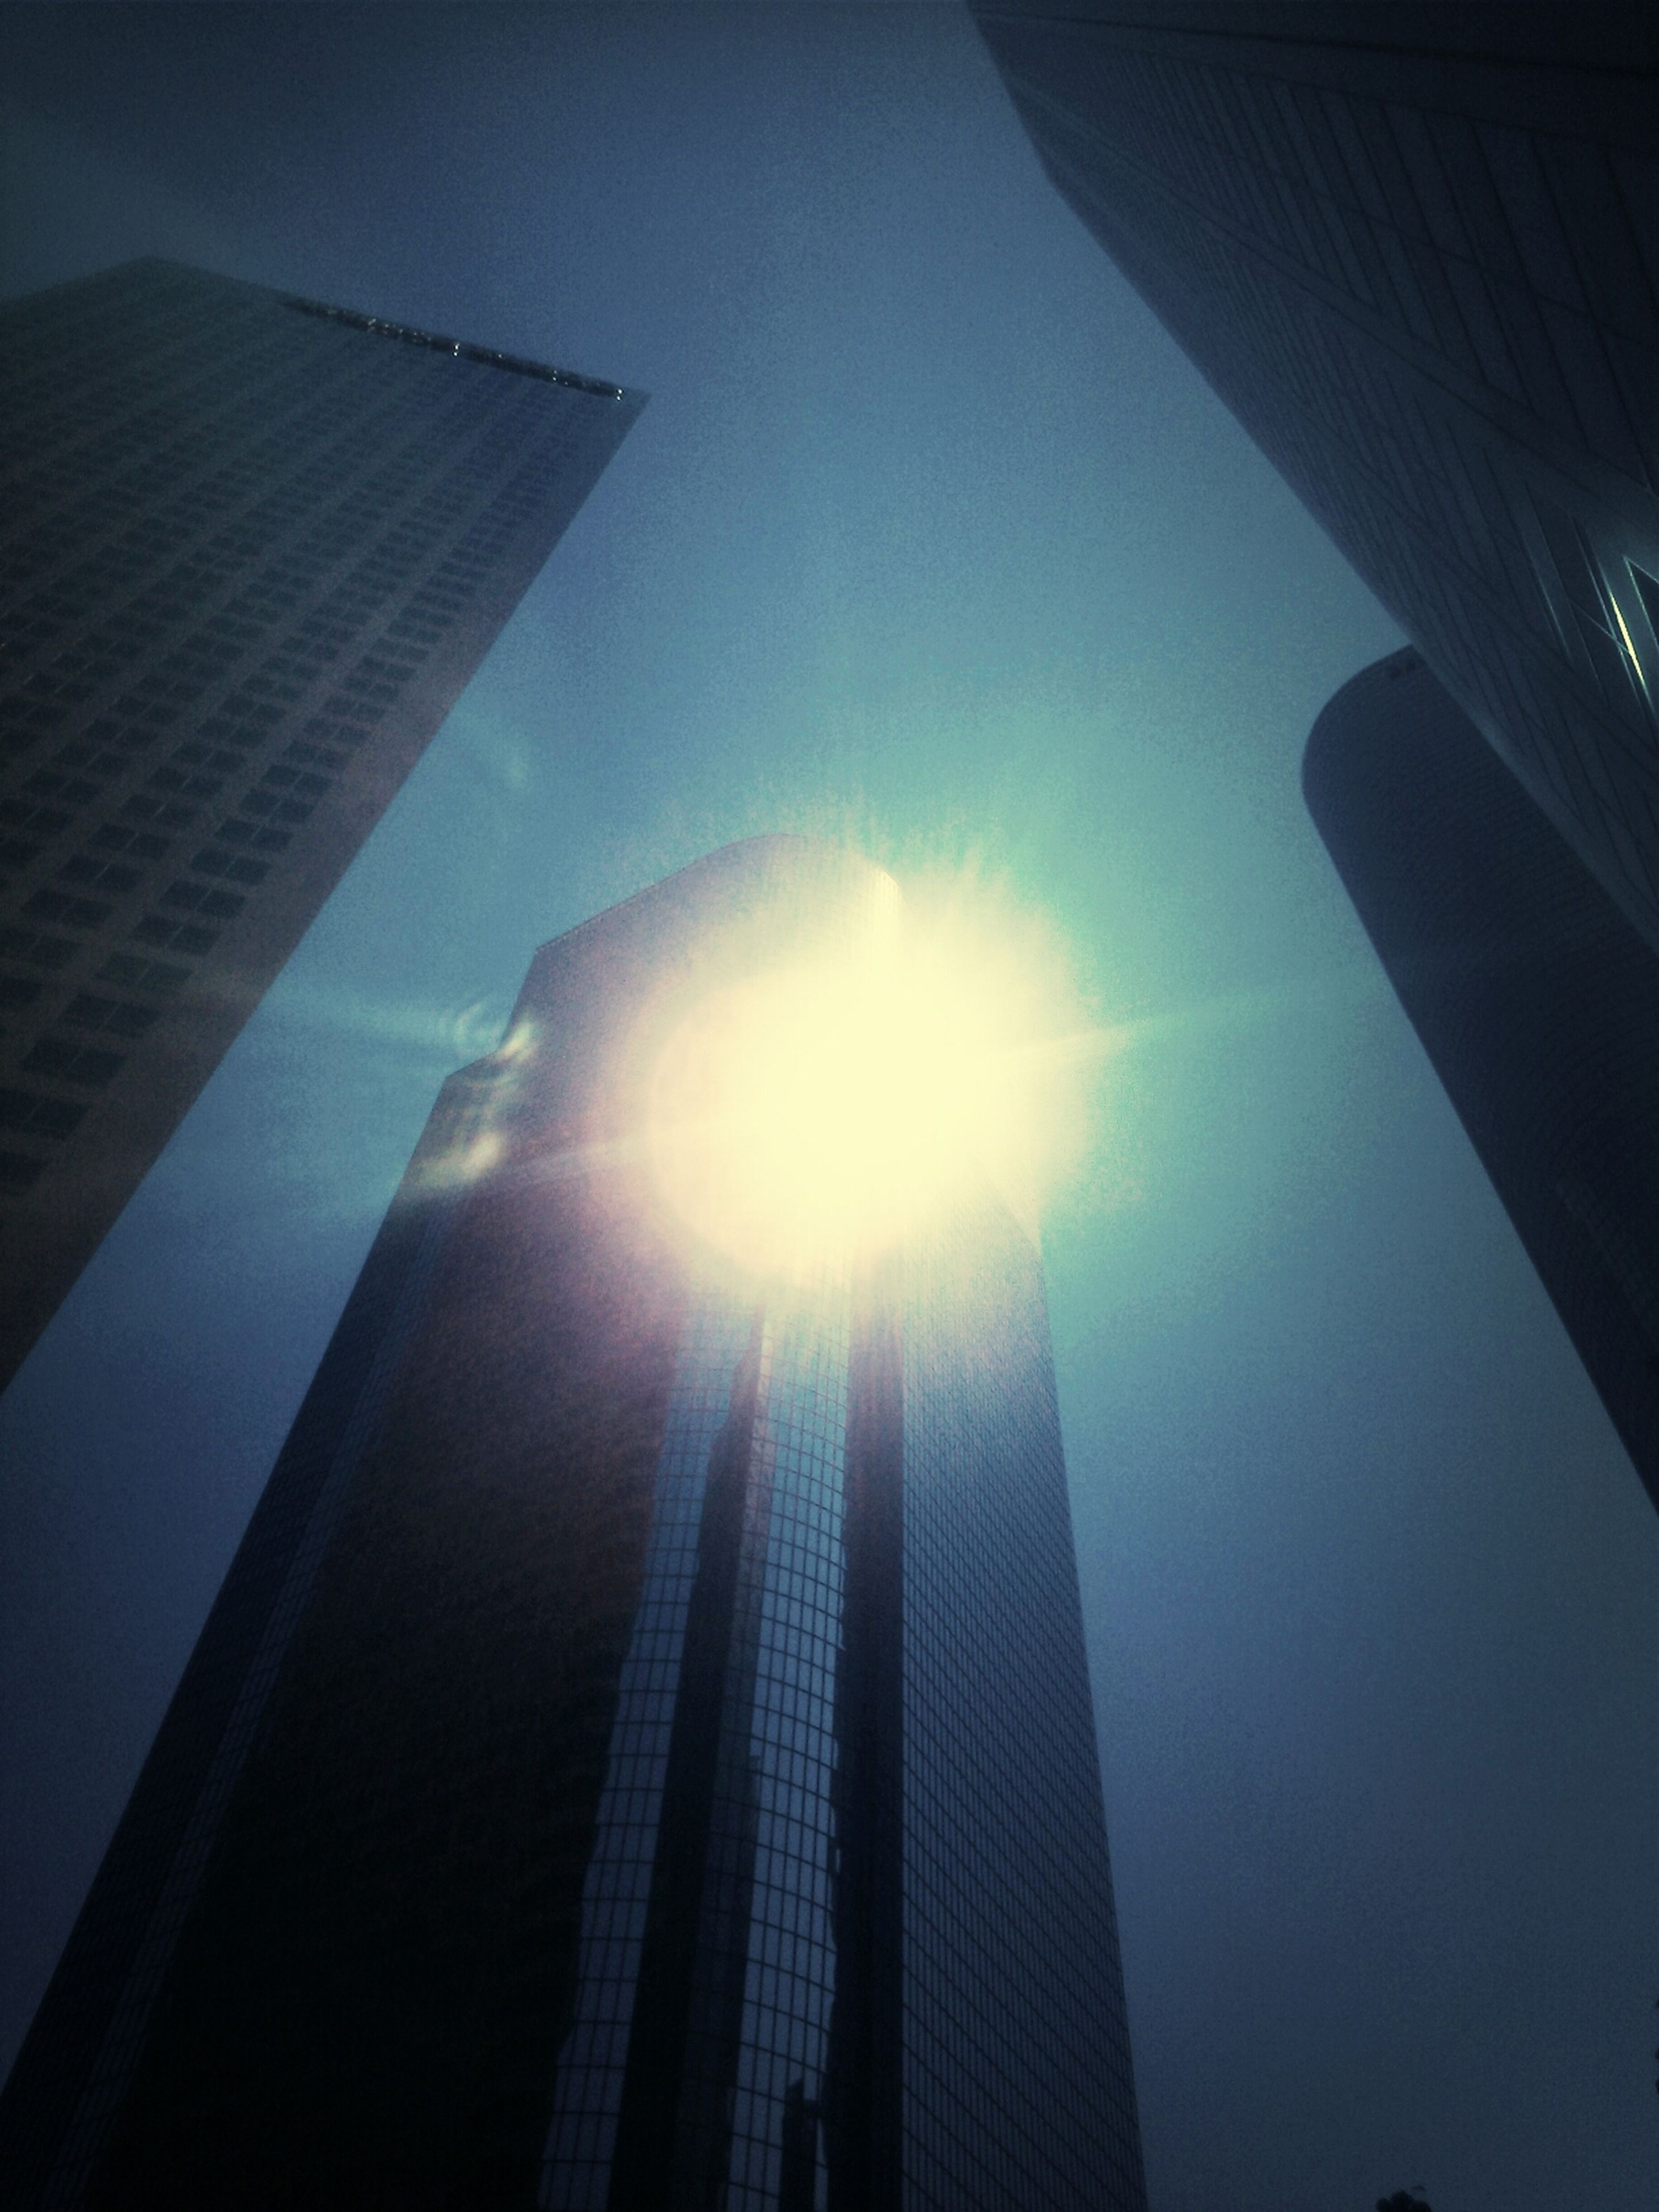 low angle view, architecture, sun, built structure, sunbeam, building exterior, lens flare, sunlight, sky, tall - high, skyscraper, tower, modern, bright, office building, city, silhouette, directly below, glass - material, building